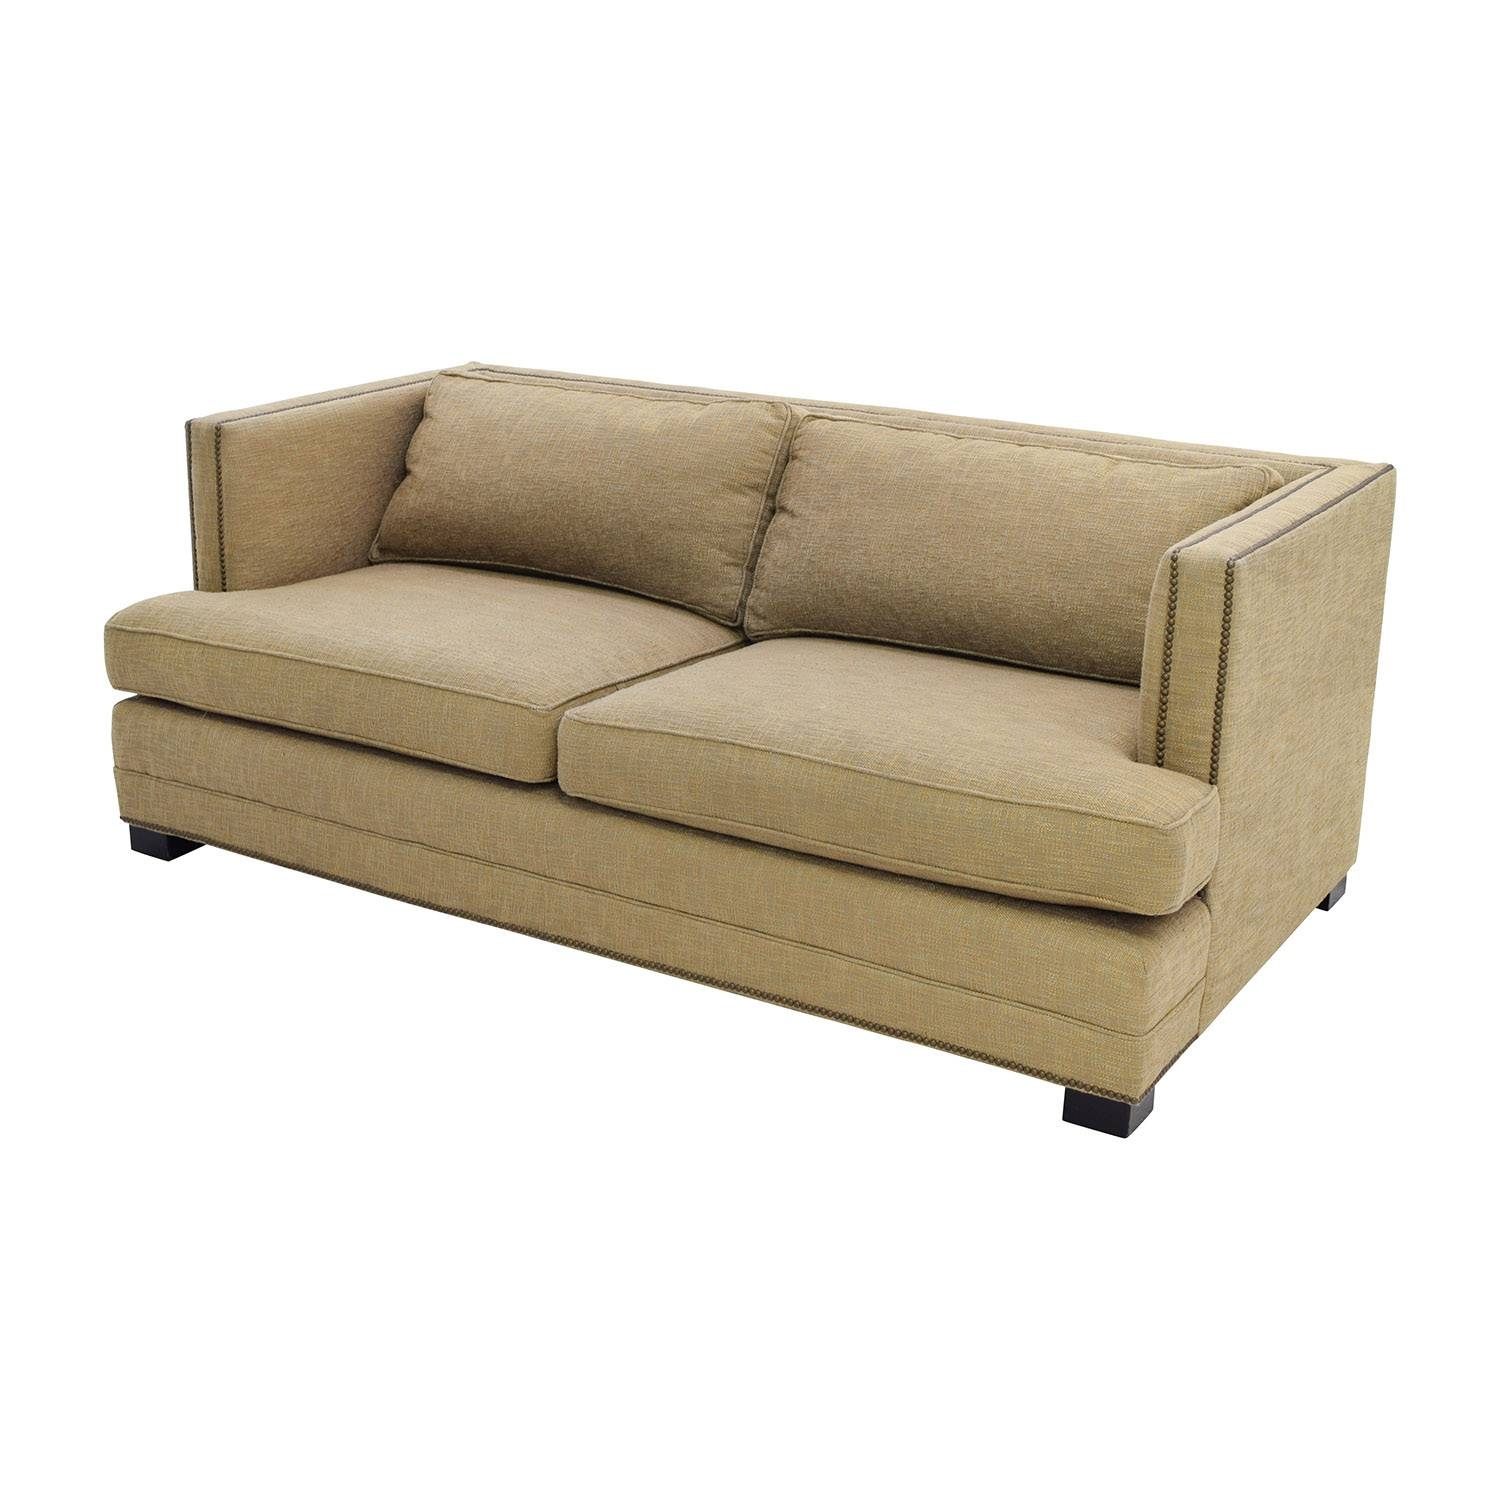 Furniture Home : Outstanding Mitchell Gold Clifton Sectional Sofa inside Mitchell Gold Sofa Slipcovers (Image 9 of 26)